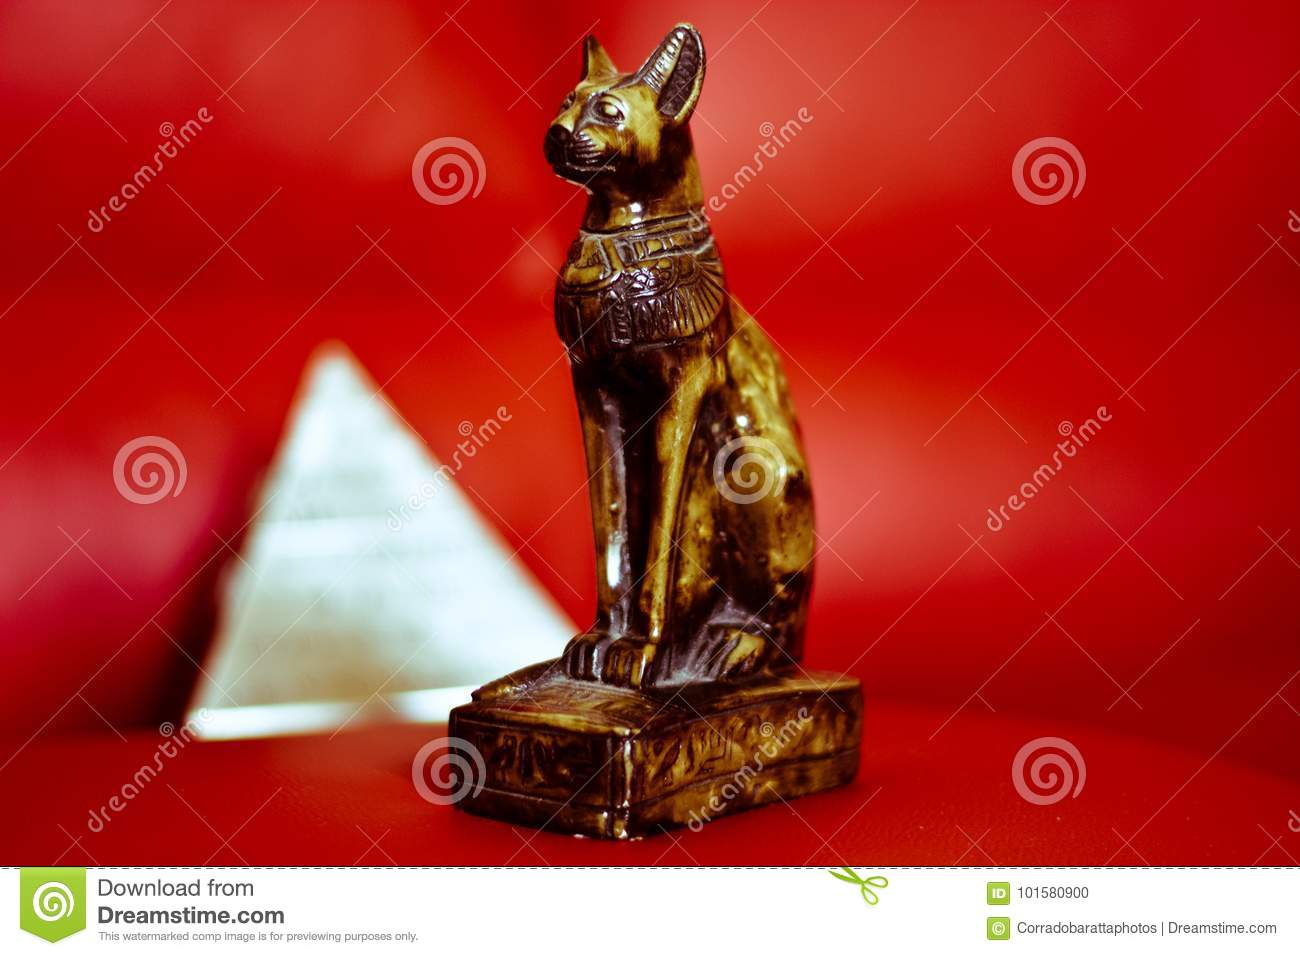 The cat and the pyramids symbol of ancient Egypt